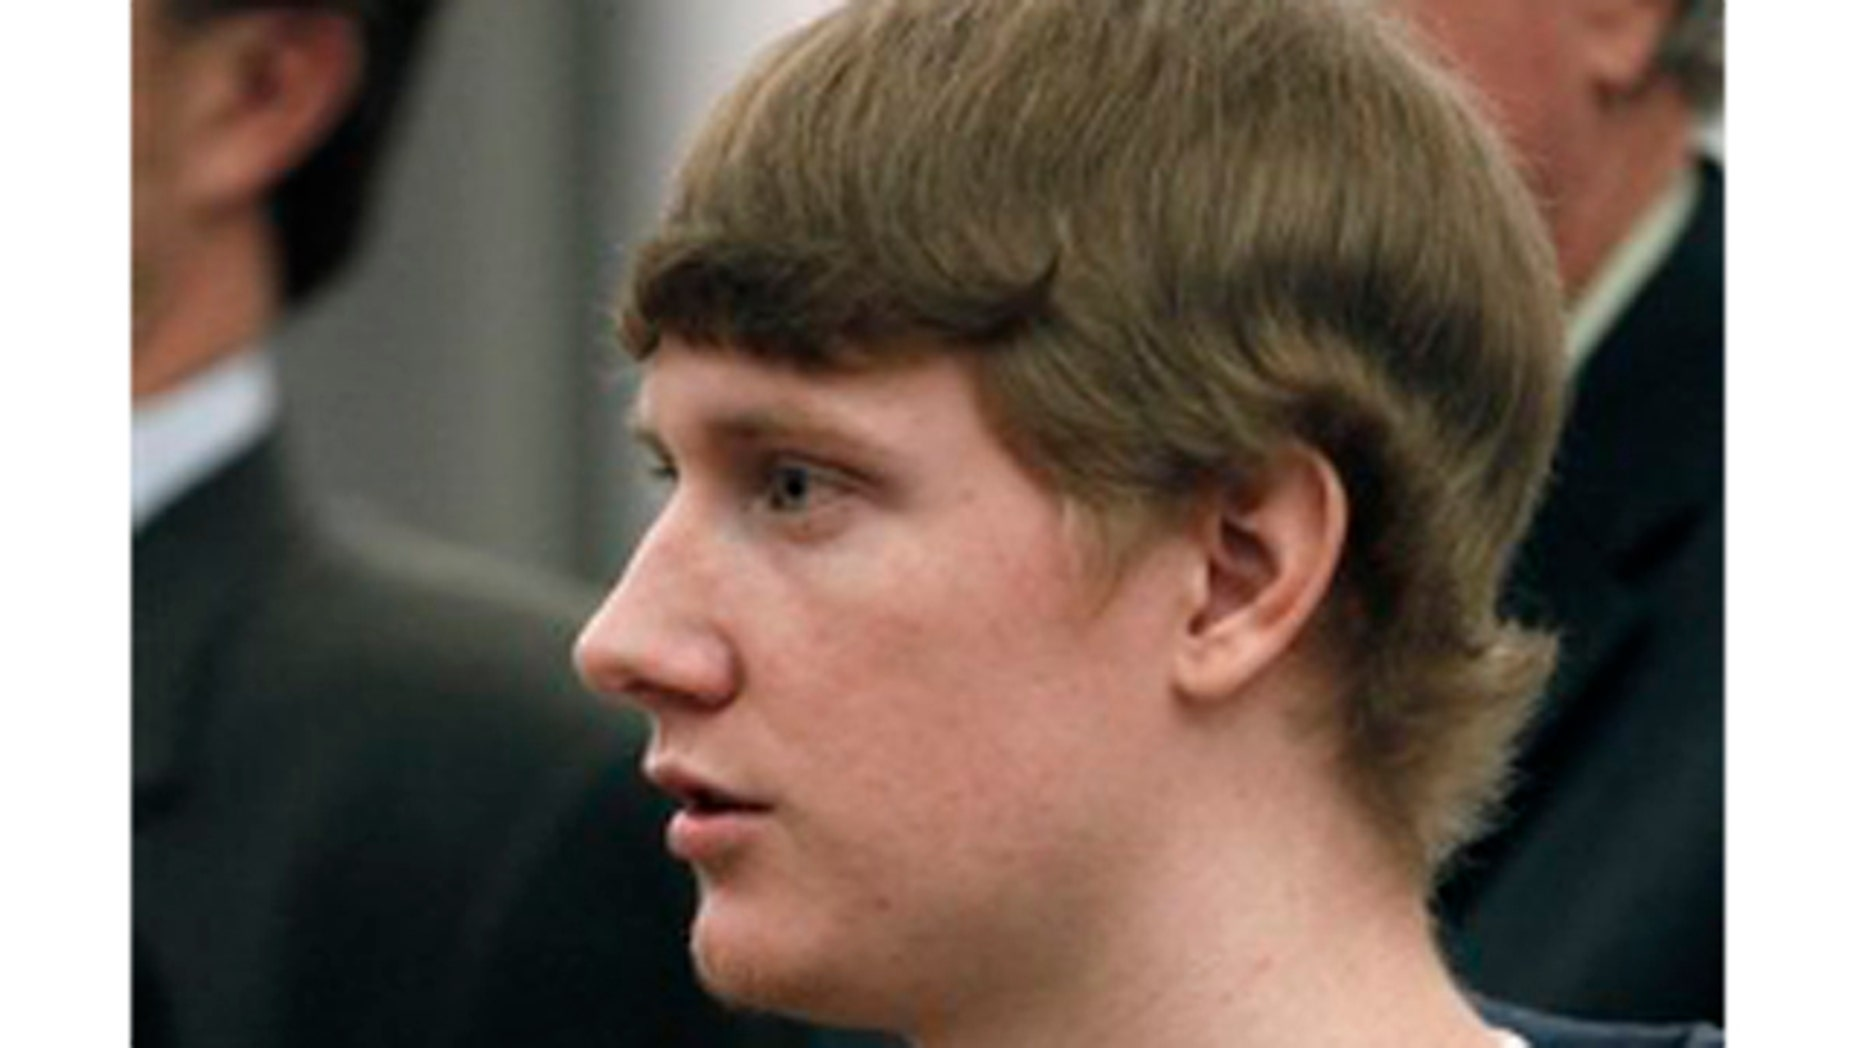 March 21, 2012: Deryl Dedmon, 19, charged with capital murder in the June 2011 death of 47-year-old James Craig Anderson in Jackson, pleads guilty to murder and committing a hate crime in Hinds County Circuit Court.